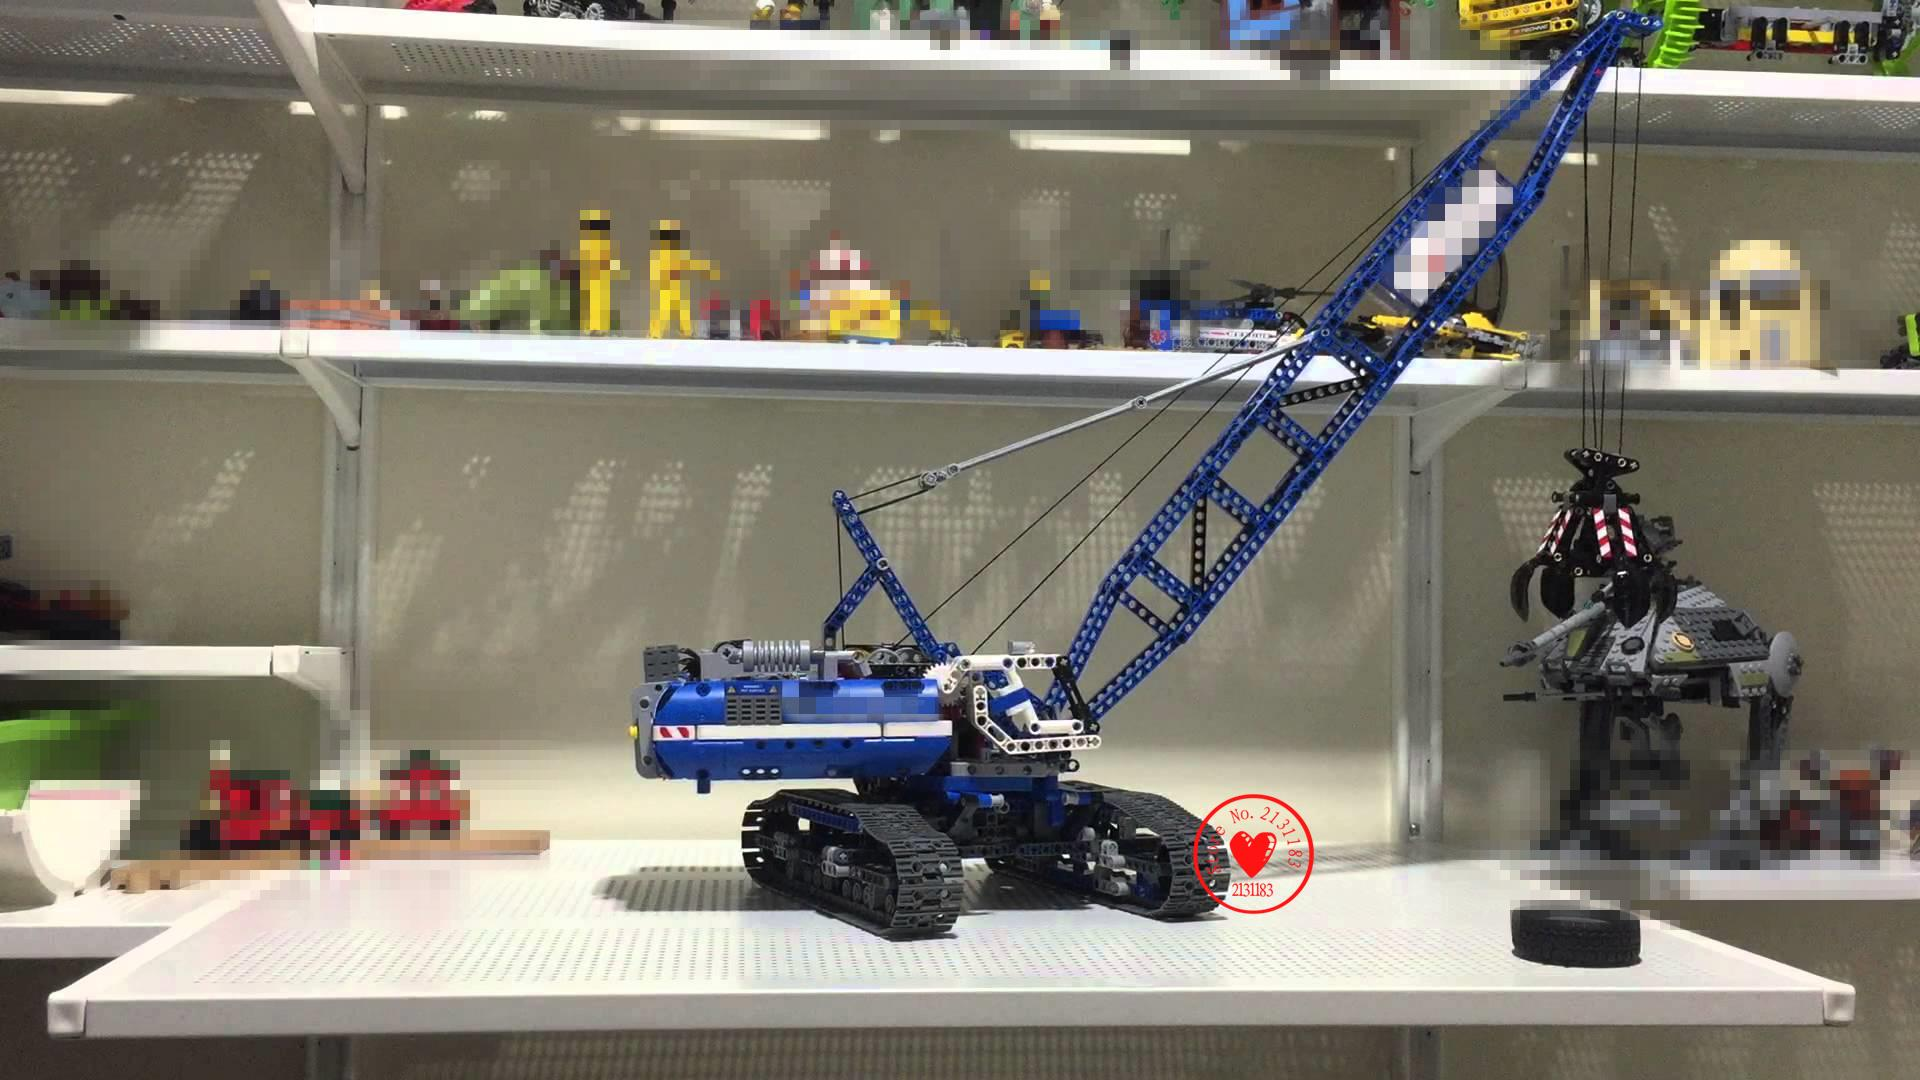 LEPIN 20010 Technic Series Crawler Crane Model Kits Educational Building Blocks Bricks Toys Gifts Children 42042 christmas gift lepin 02012 774pcs city series deepwater exploration vessel children educational building blocks bricks toys model gift 60095